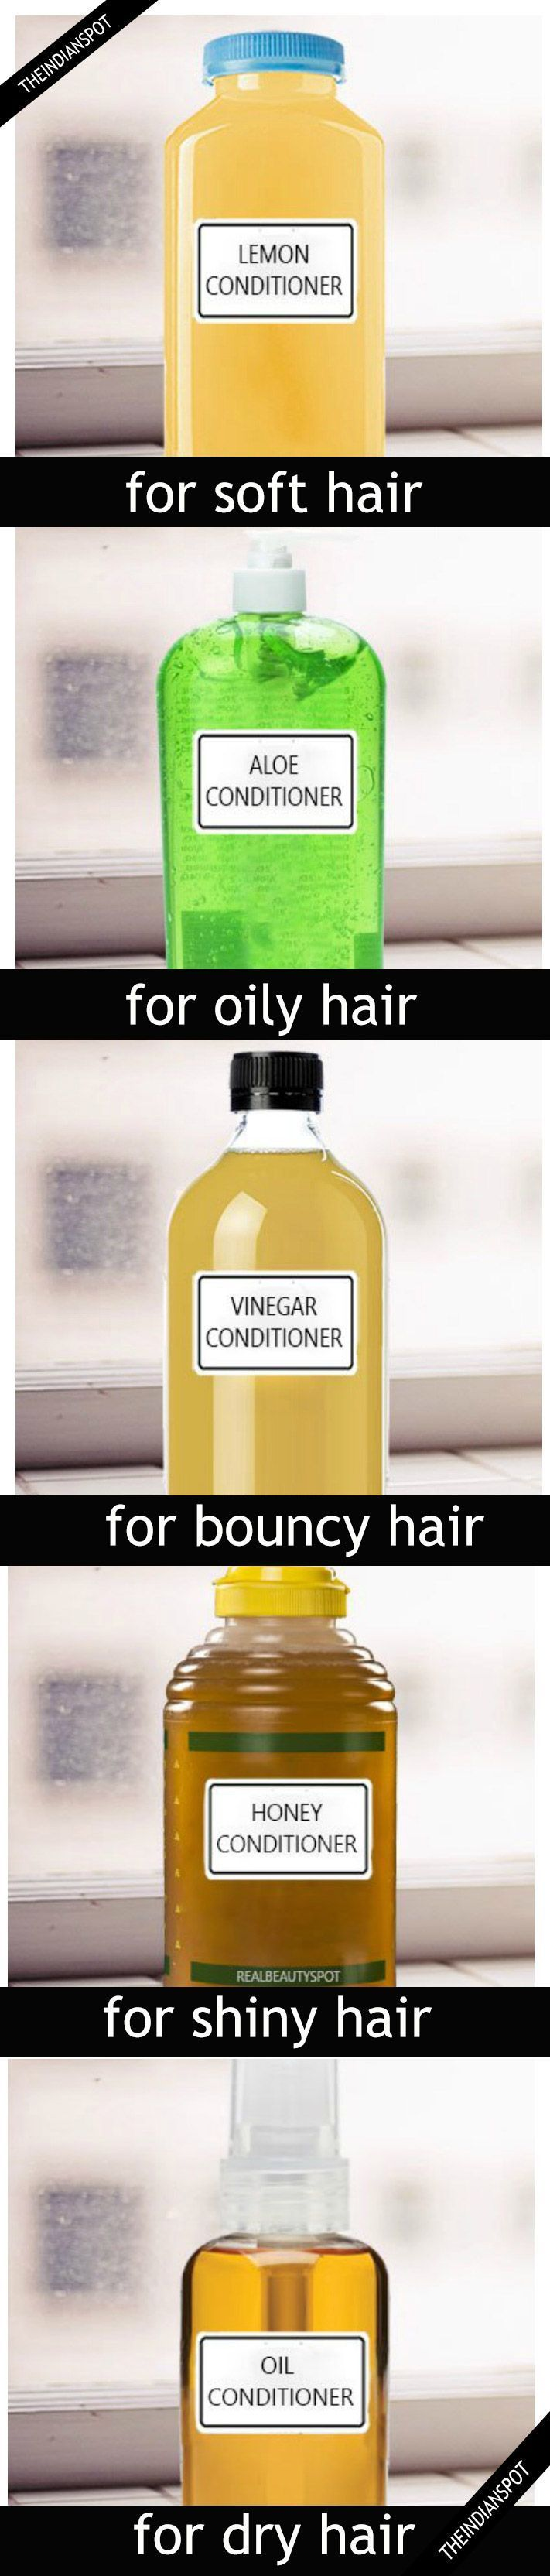 5 Natural DIY Hair Conditioner for All Hair Types